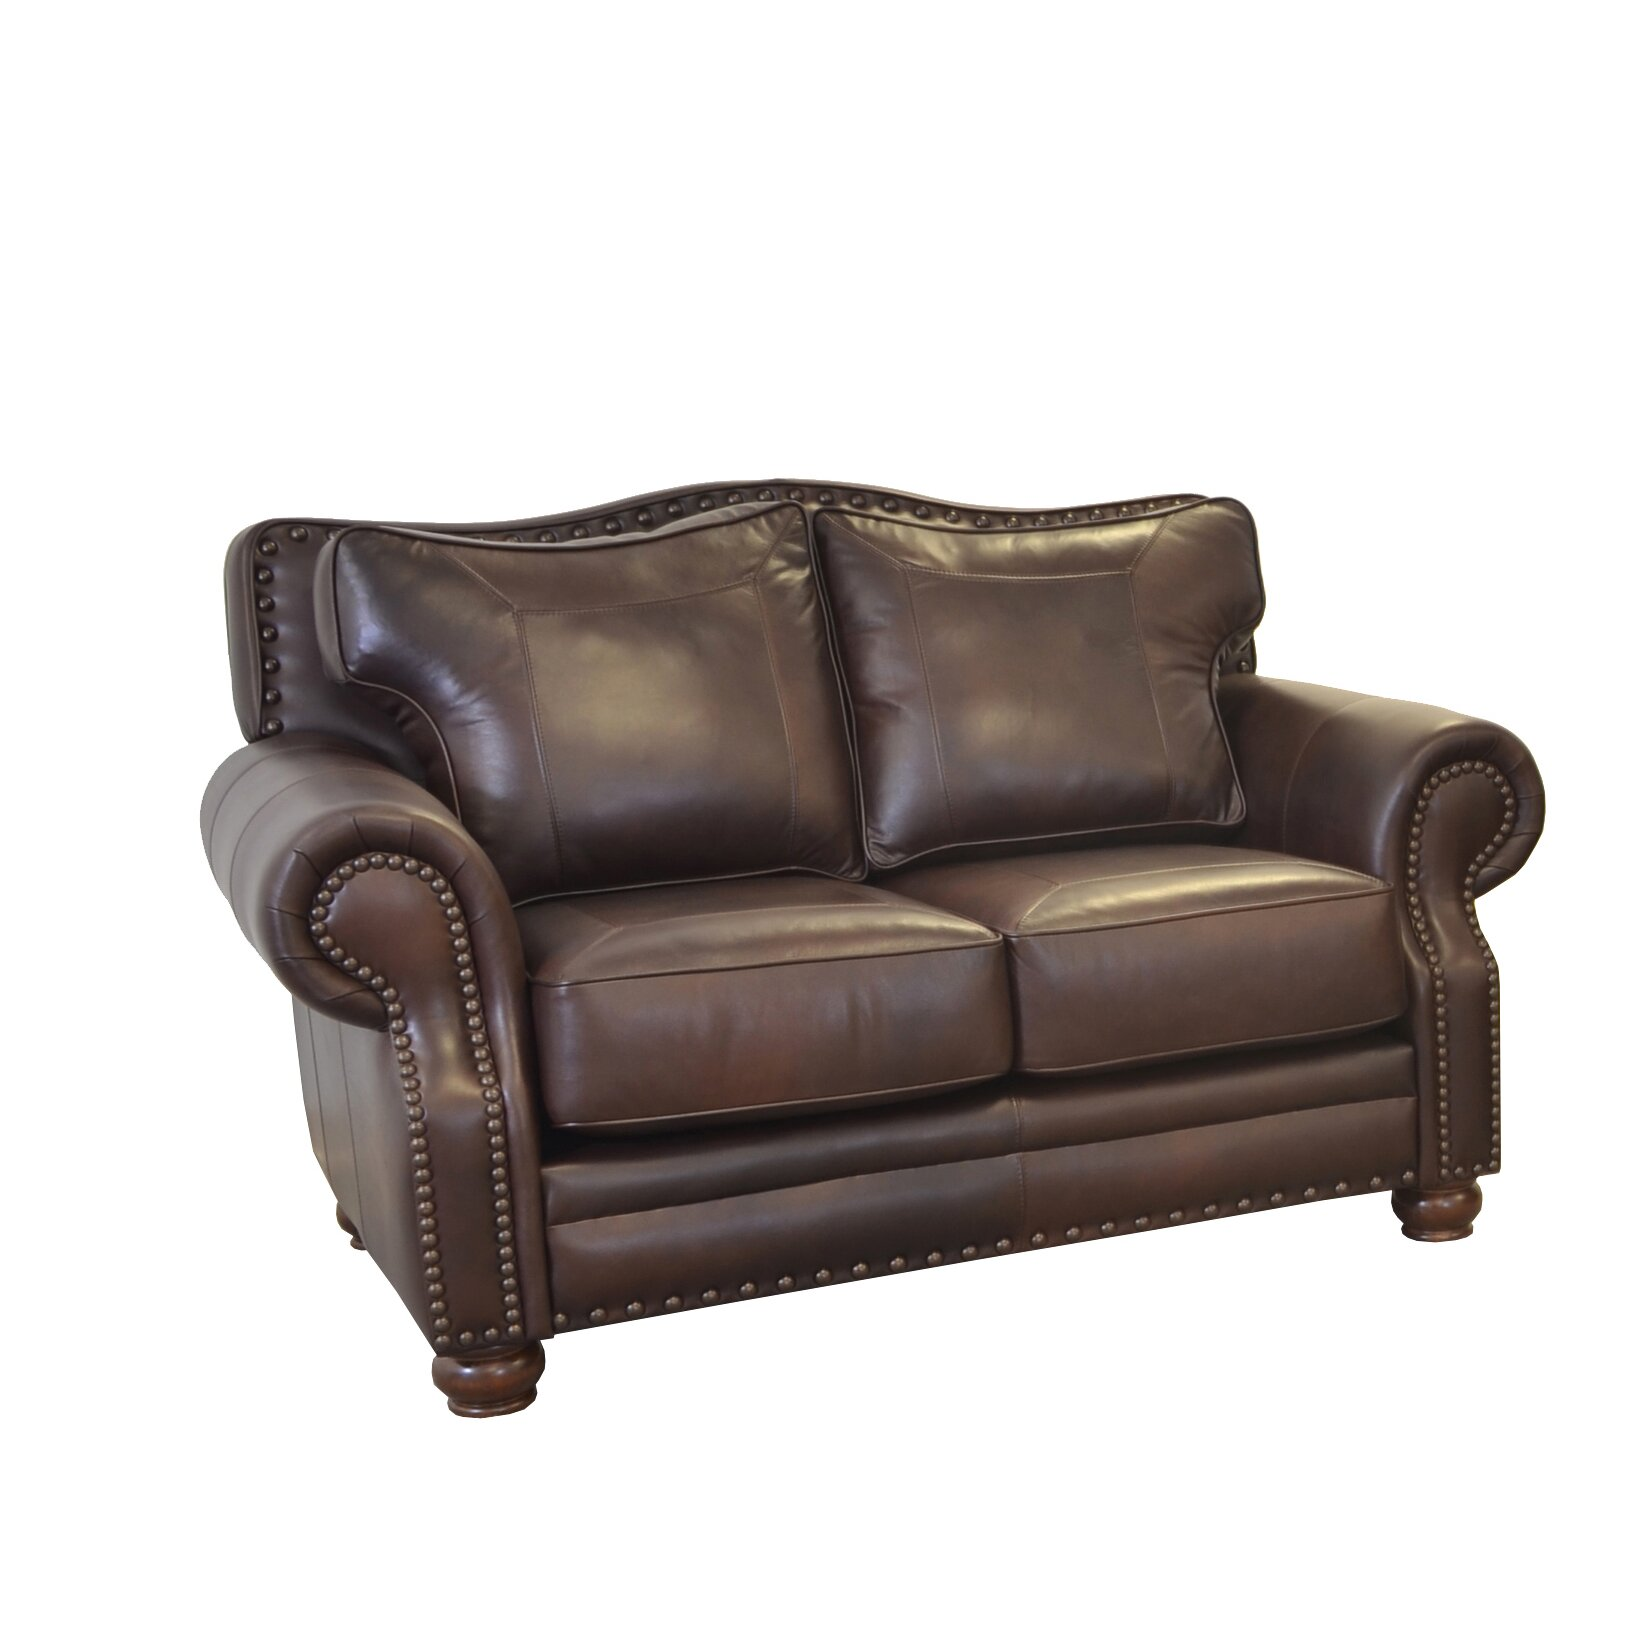 Genuine Leather Sectional Sofa Canada: Westland And Birch Westford Genuine Top Grain Leather Sofa